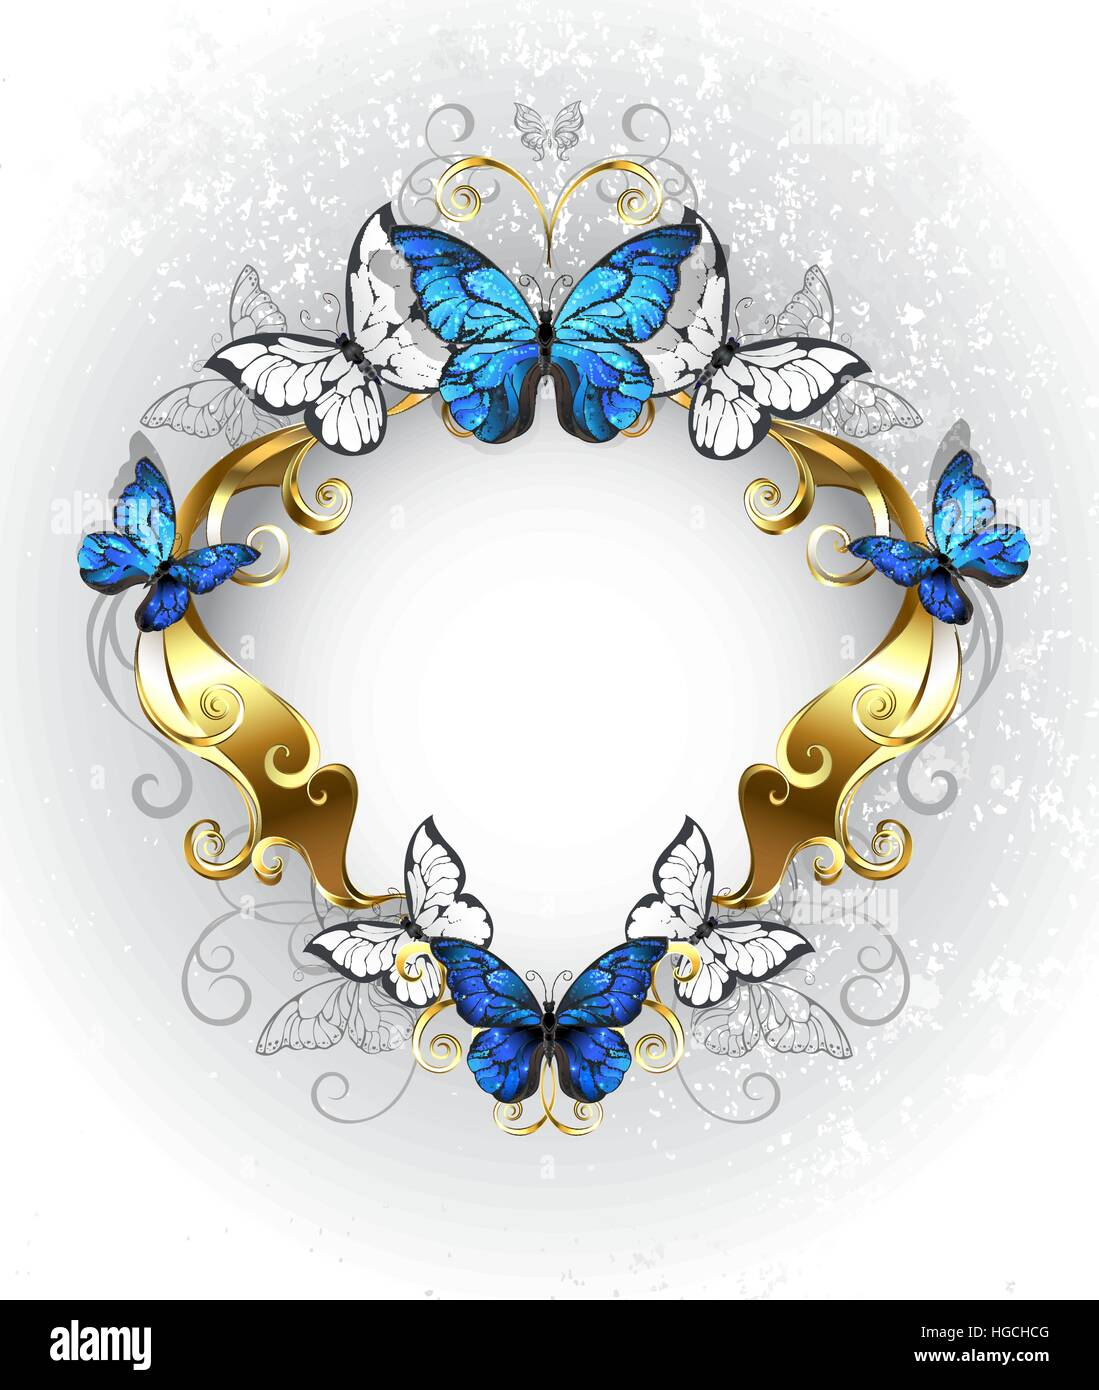 Jewelry gold patterned banner with blue and white butterflies